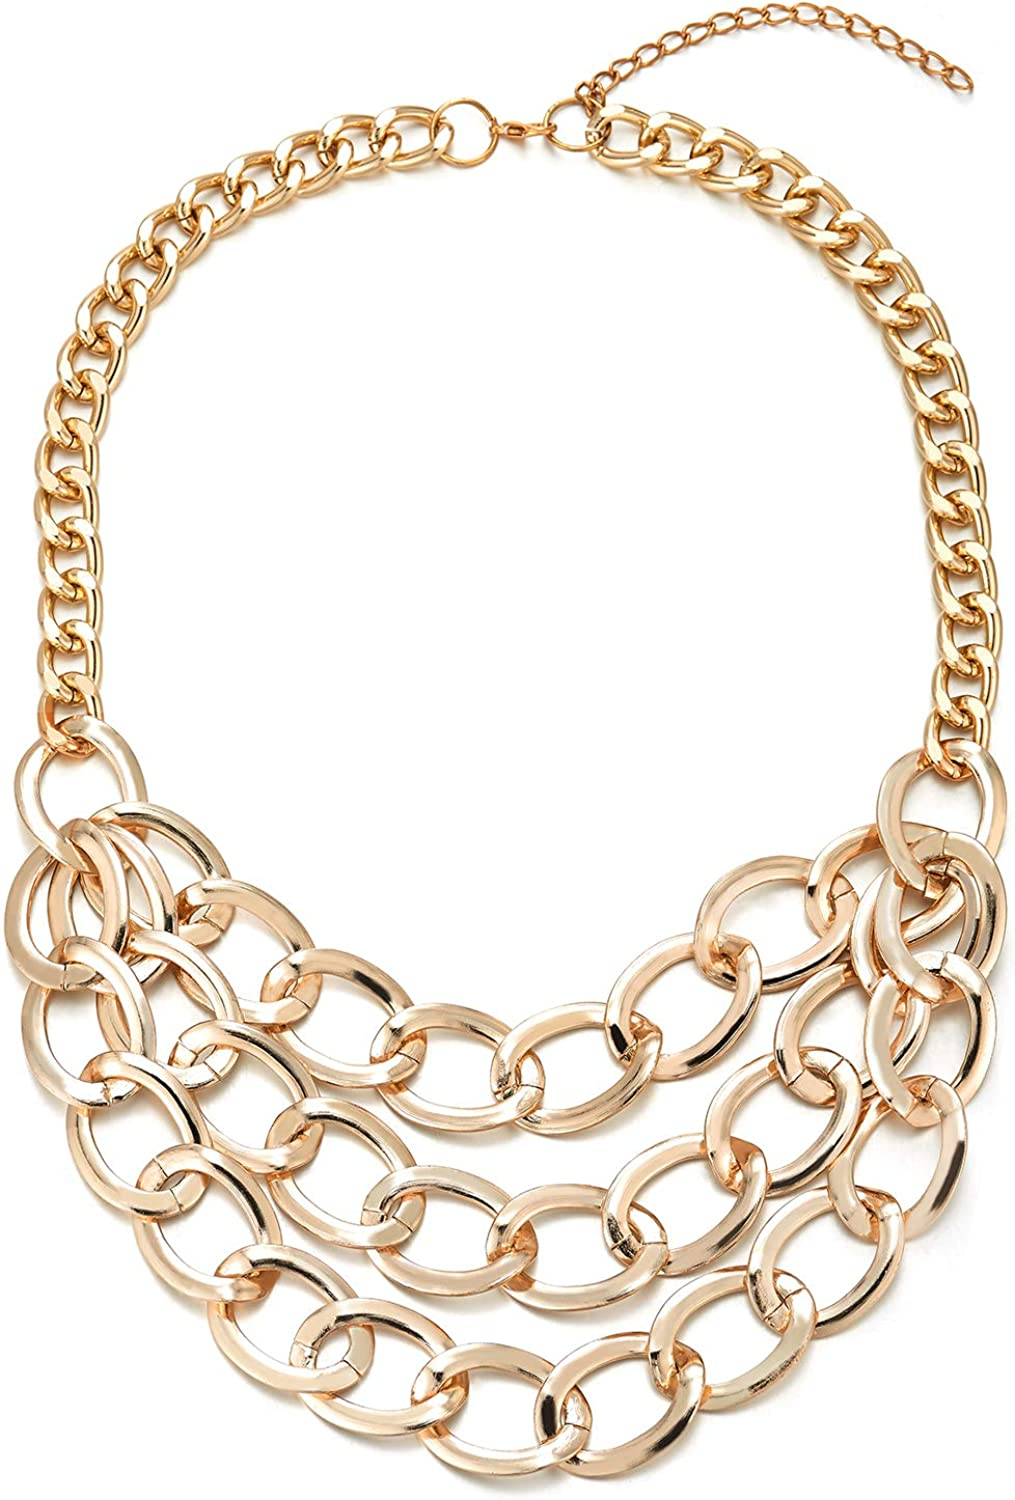 COOLSTEELANDBEYOND Gold Color Choker Collar Statement Necklace, Large Three-Layer Curb Chain Pendant, Light Weight